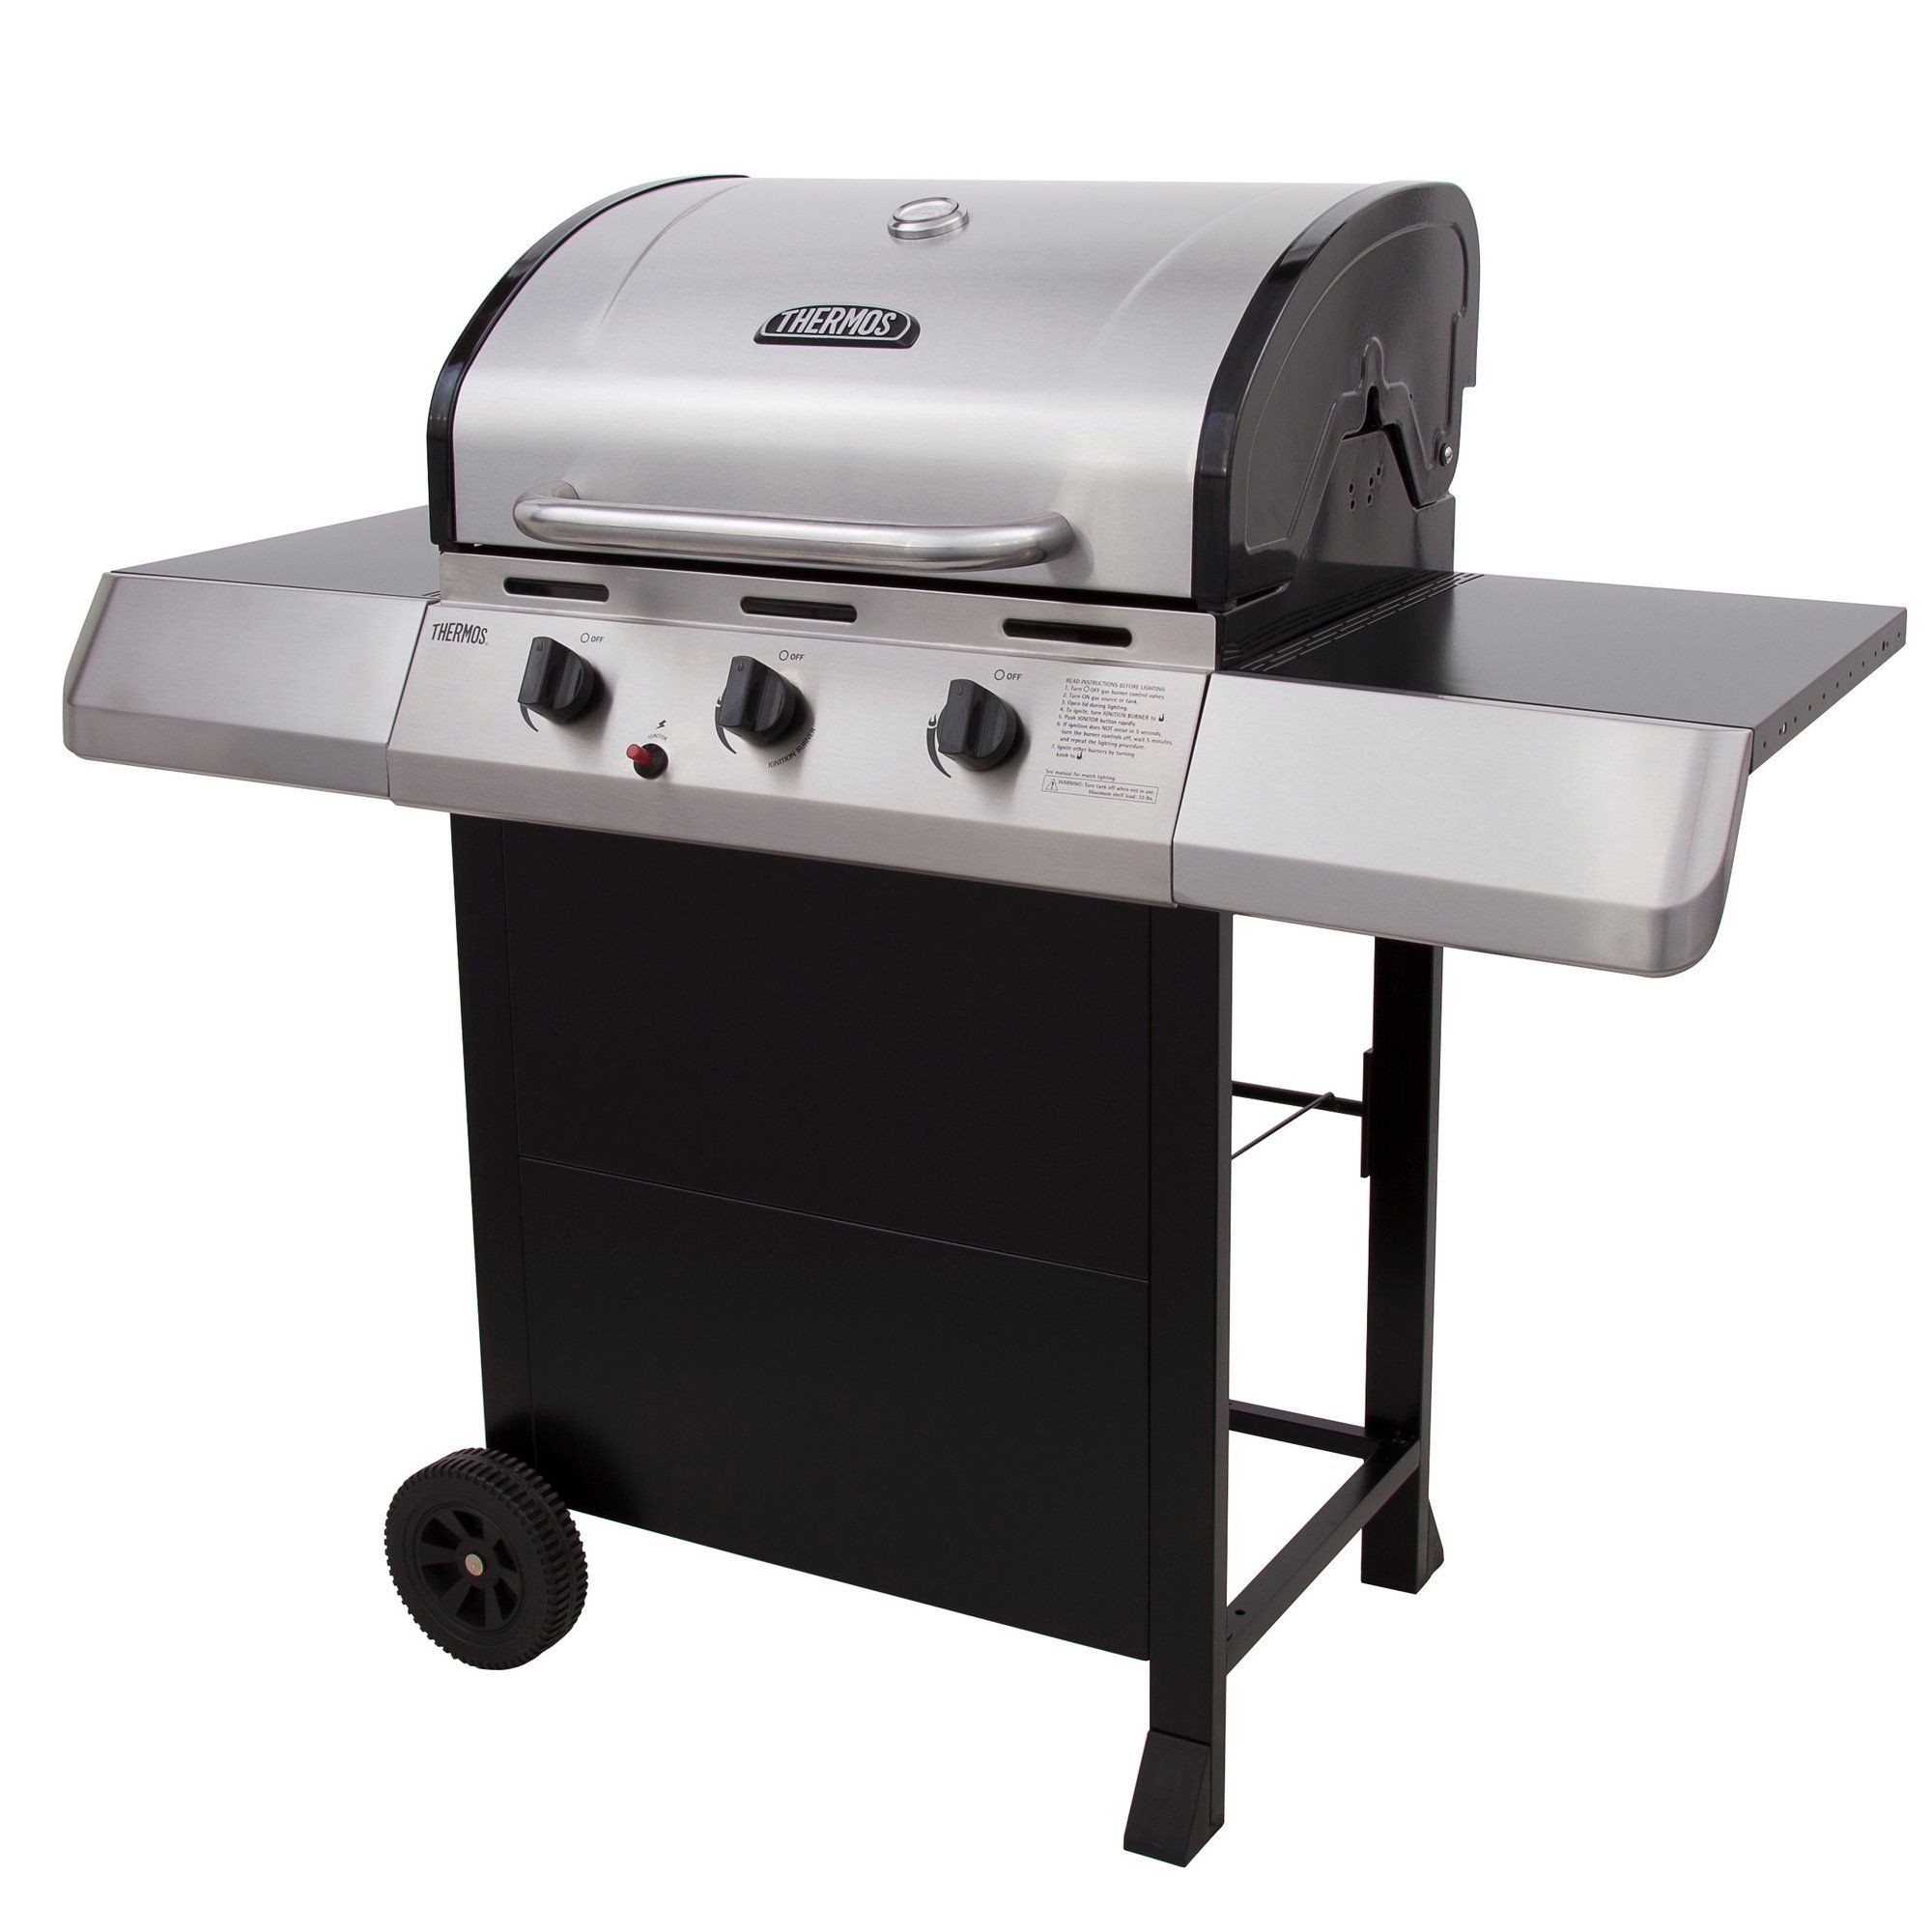 Thermos 3 Burner Propane Gas Grill With Side Shelves Http Grillidea Com Best Gas Grills Best Gas Grills Gas Grill Gas Grill Reviews